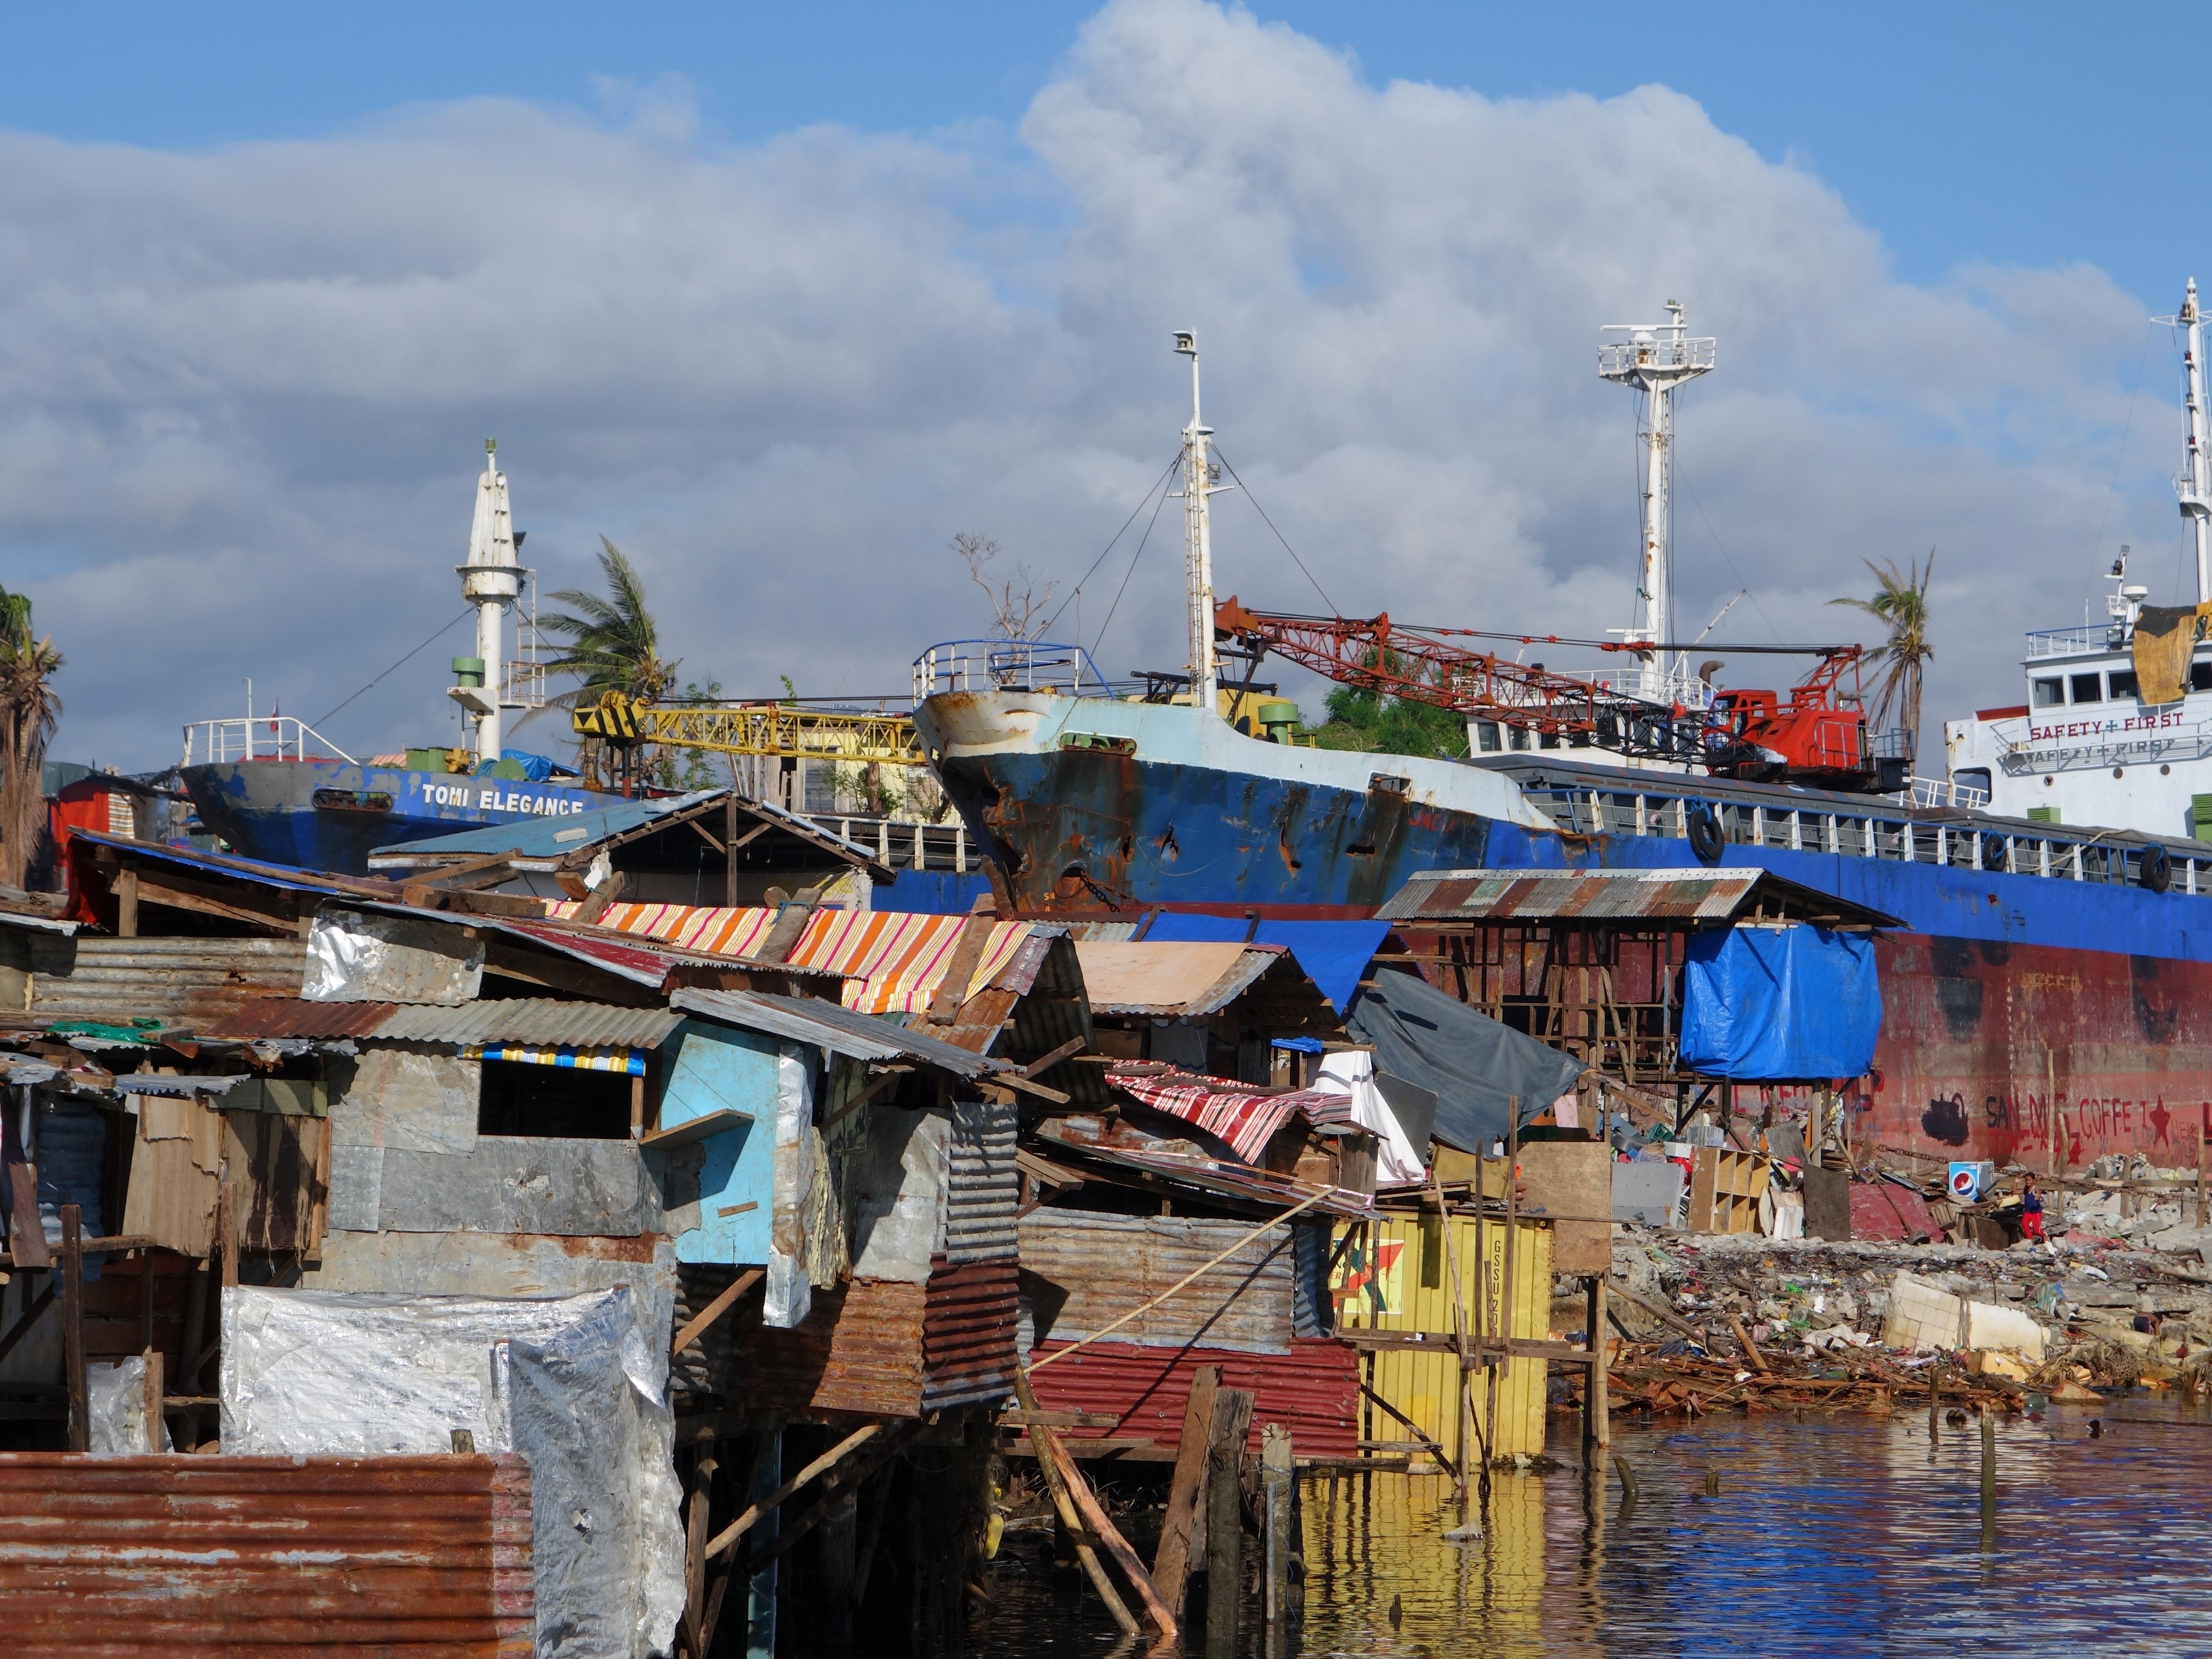 A seaside slum in Tacloban, the Philippines, devastated by Typhoon Haiyan